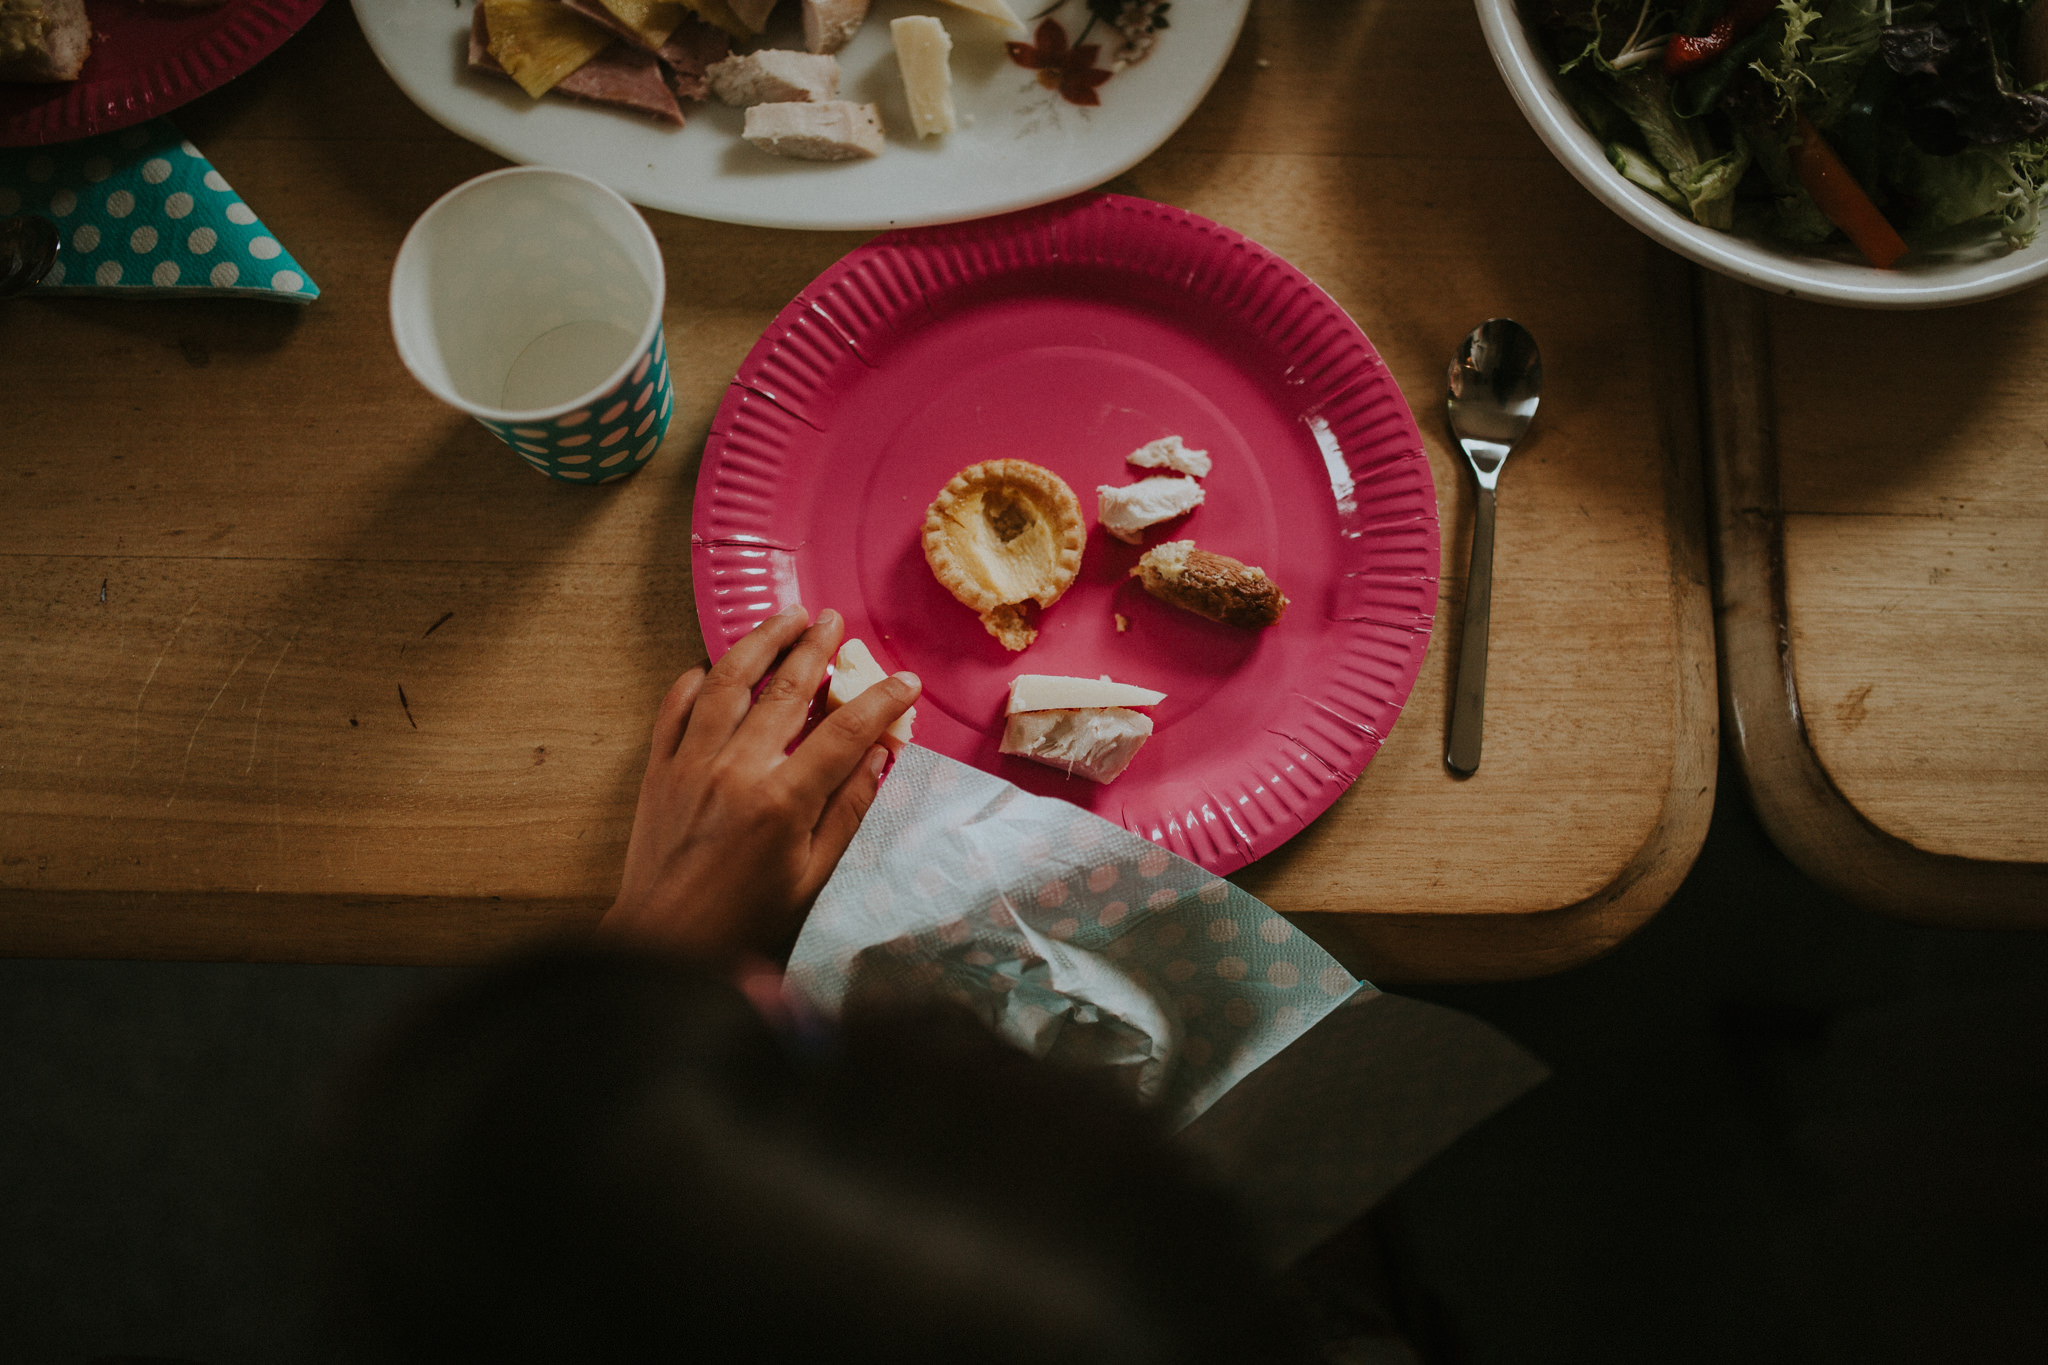 This closeup shows the pink plate of a wedding guests with some food on it.